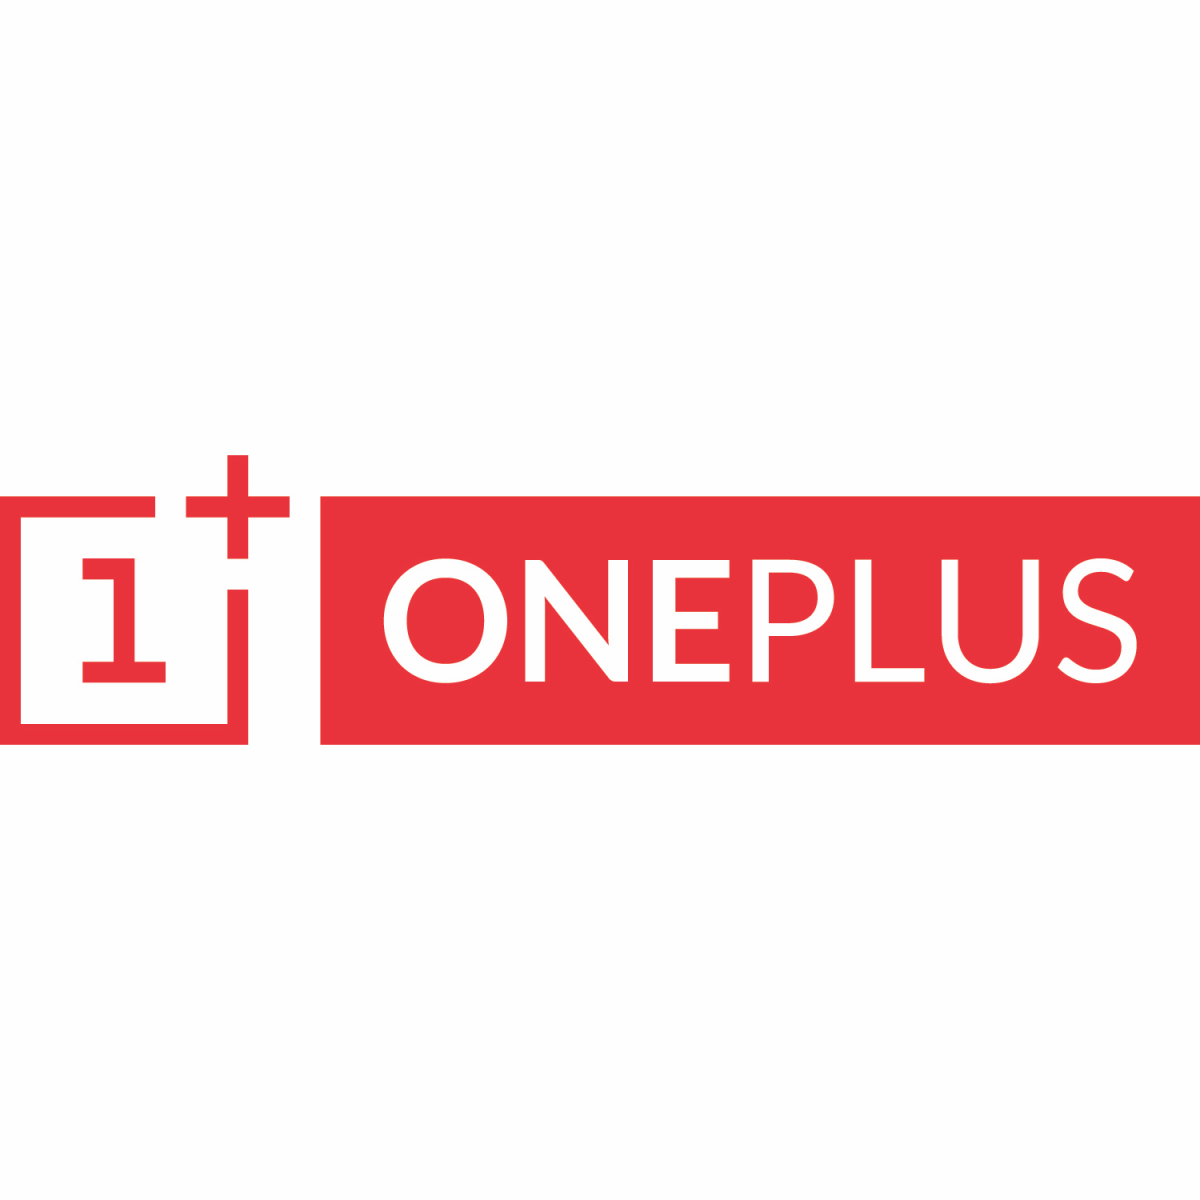 OnePlus 6 will reportedly have a 19:9 notched display Oneplus